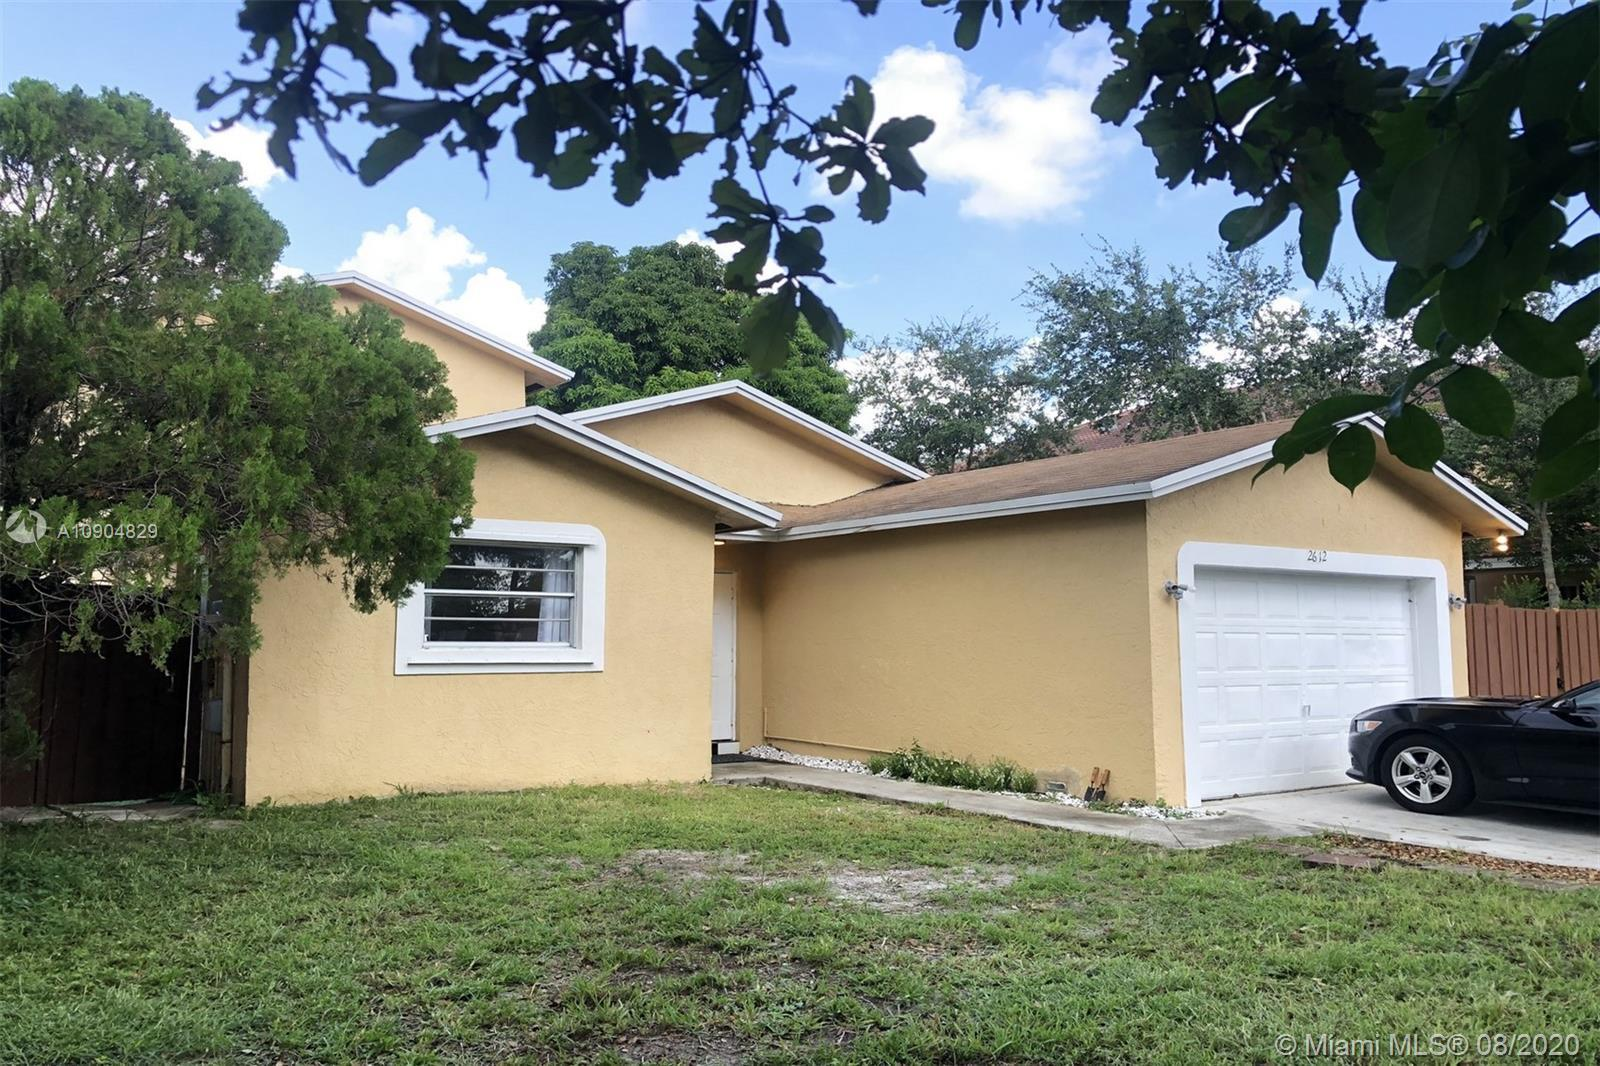 Beautifully remodeled single-family home in Hollywood with great rental potential. This 4 bedroom an